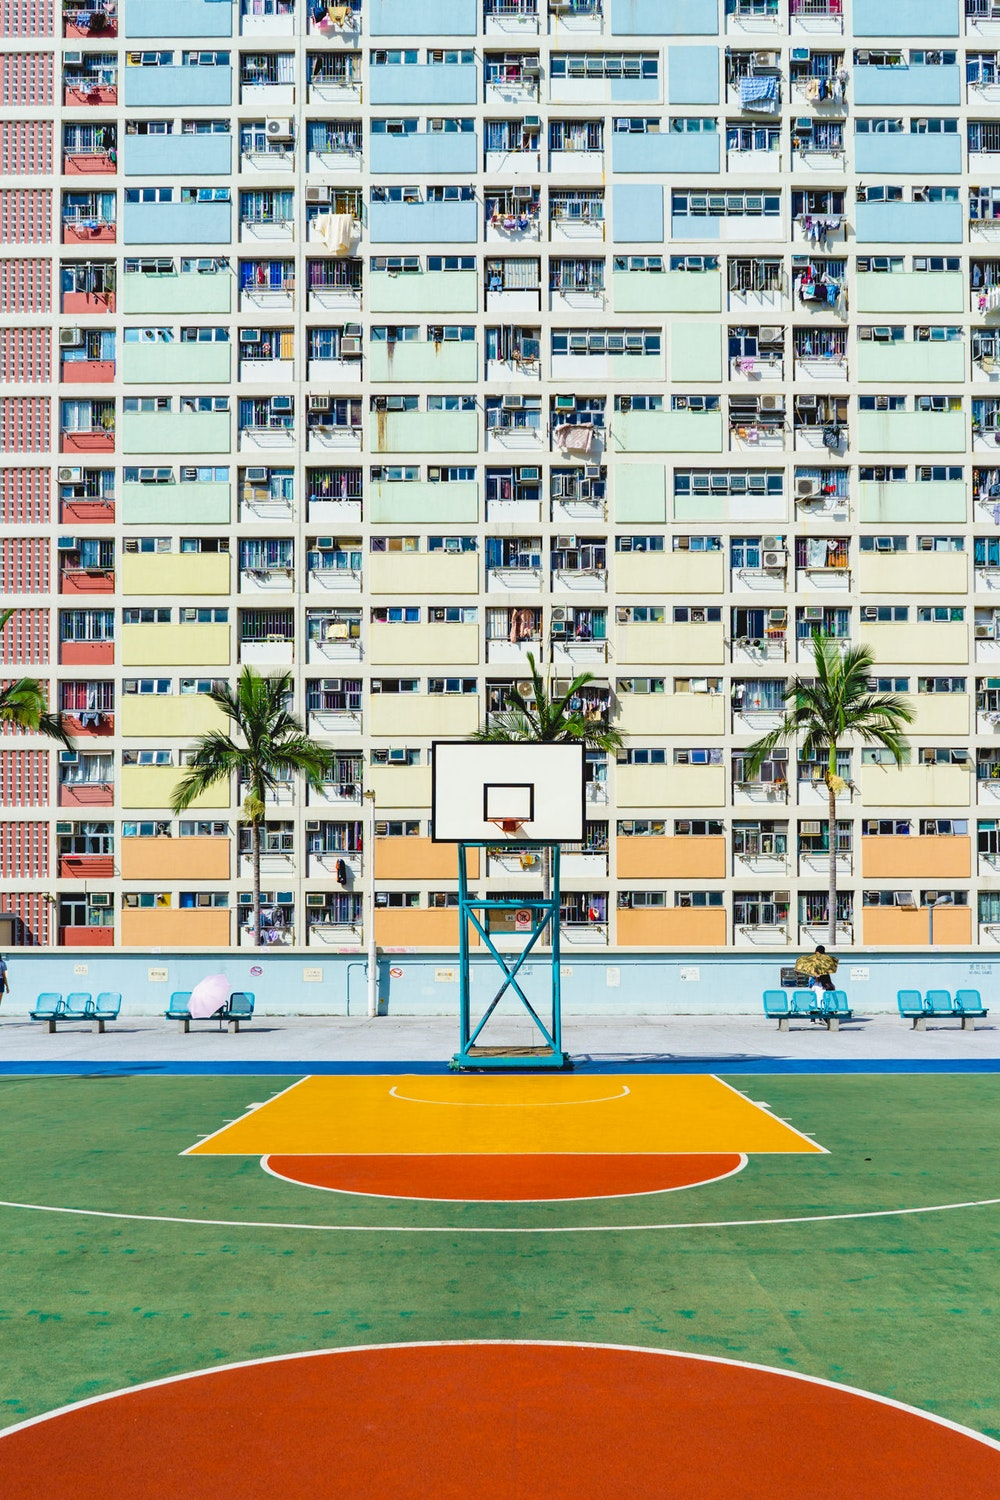 Hong Kong image from Choi Hung Rainbow Estate